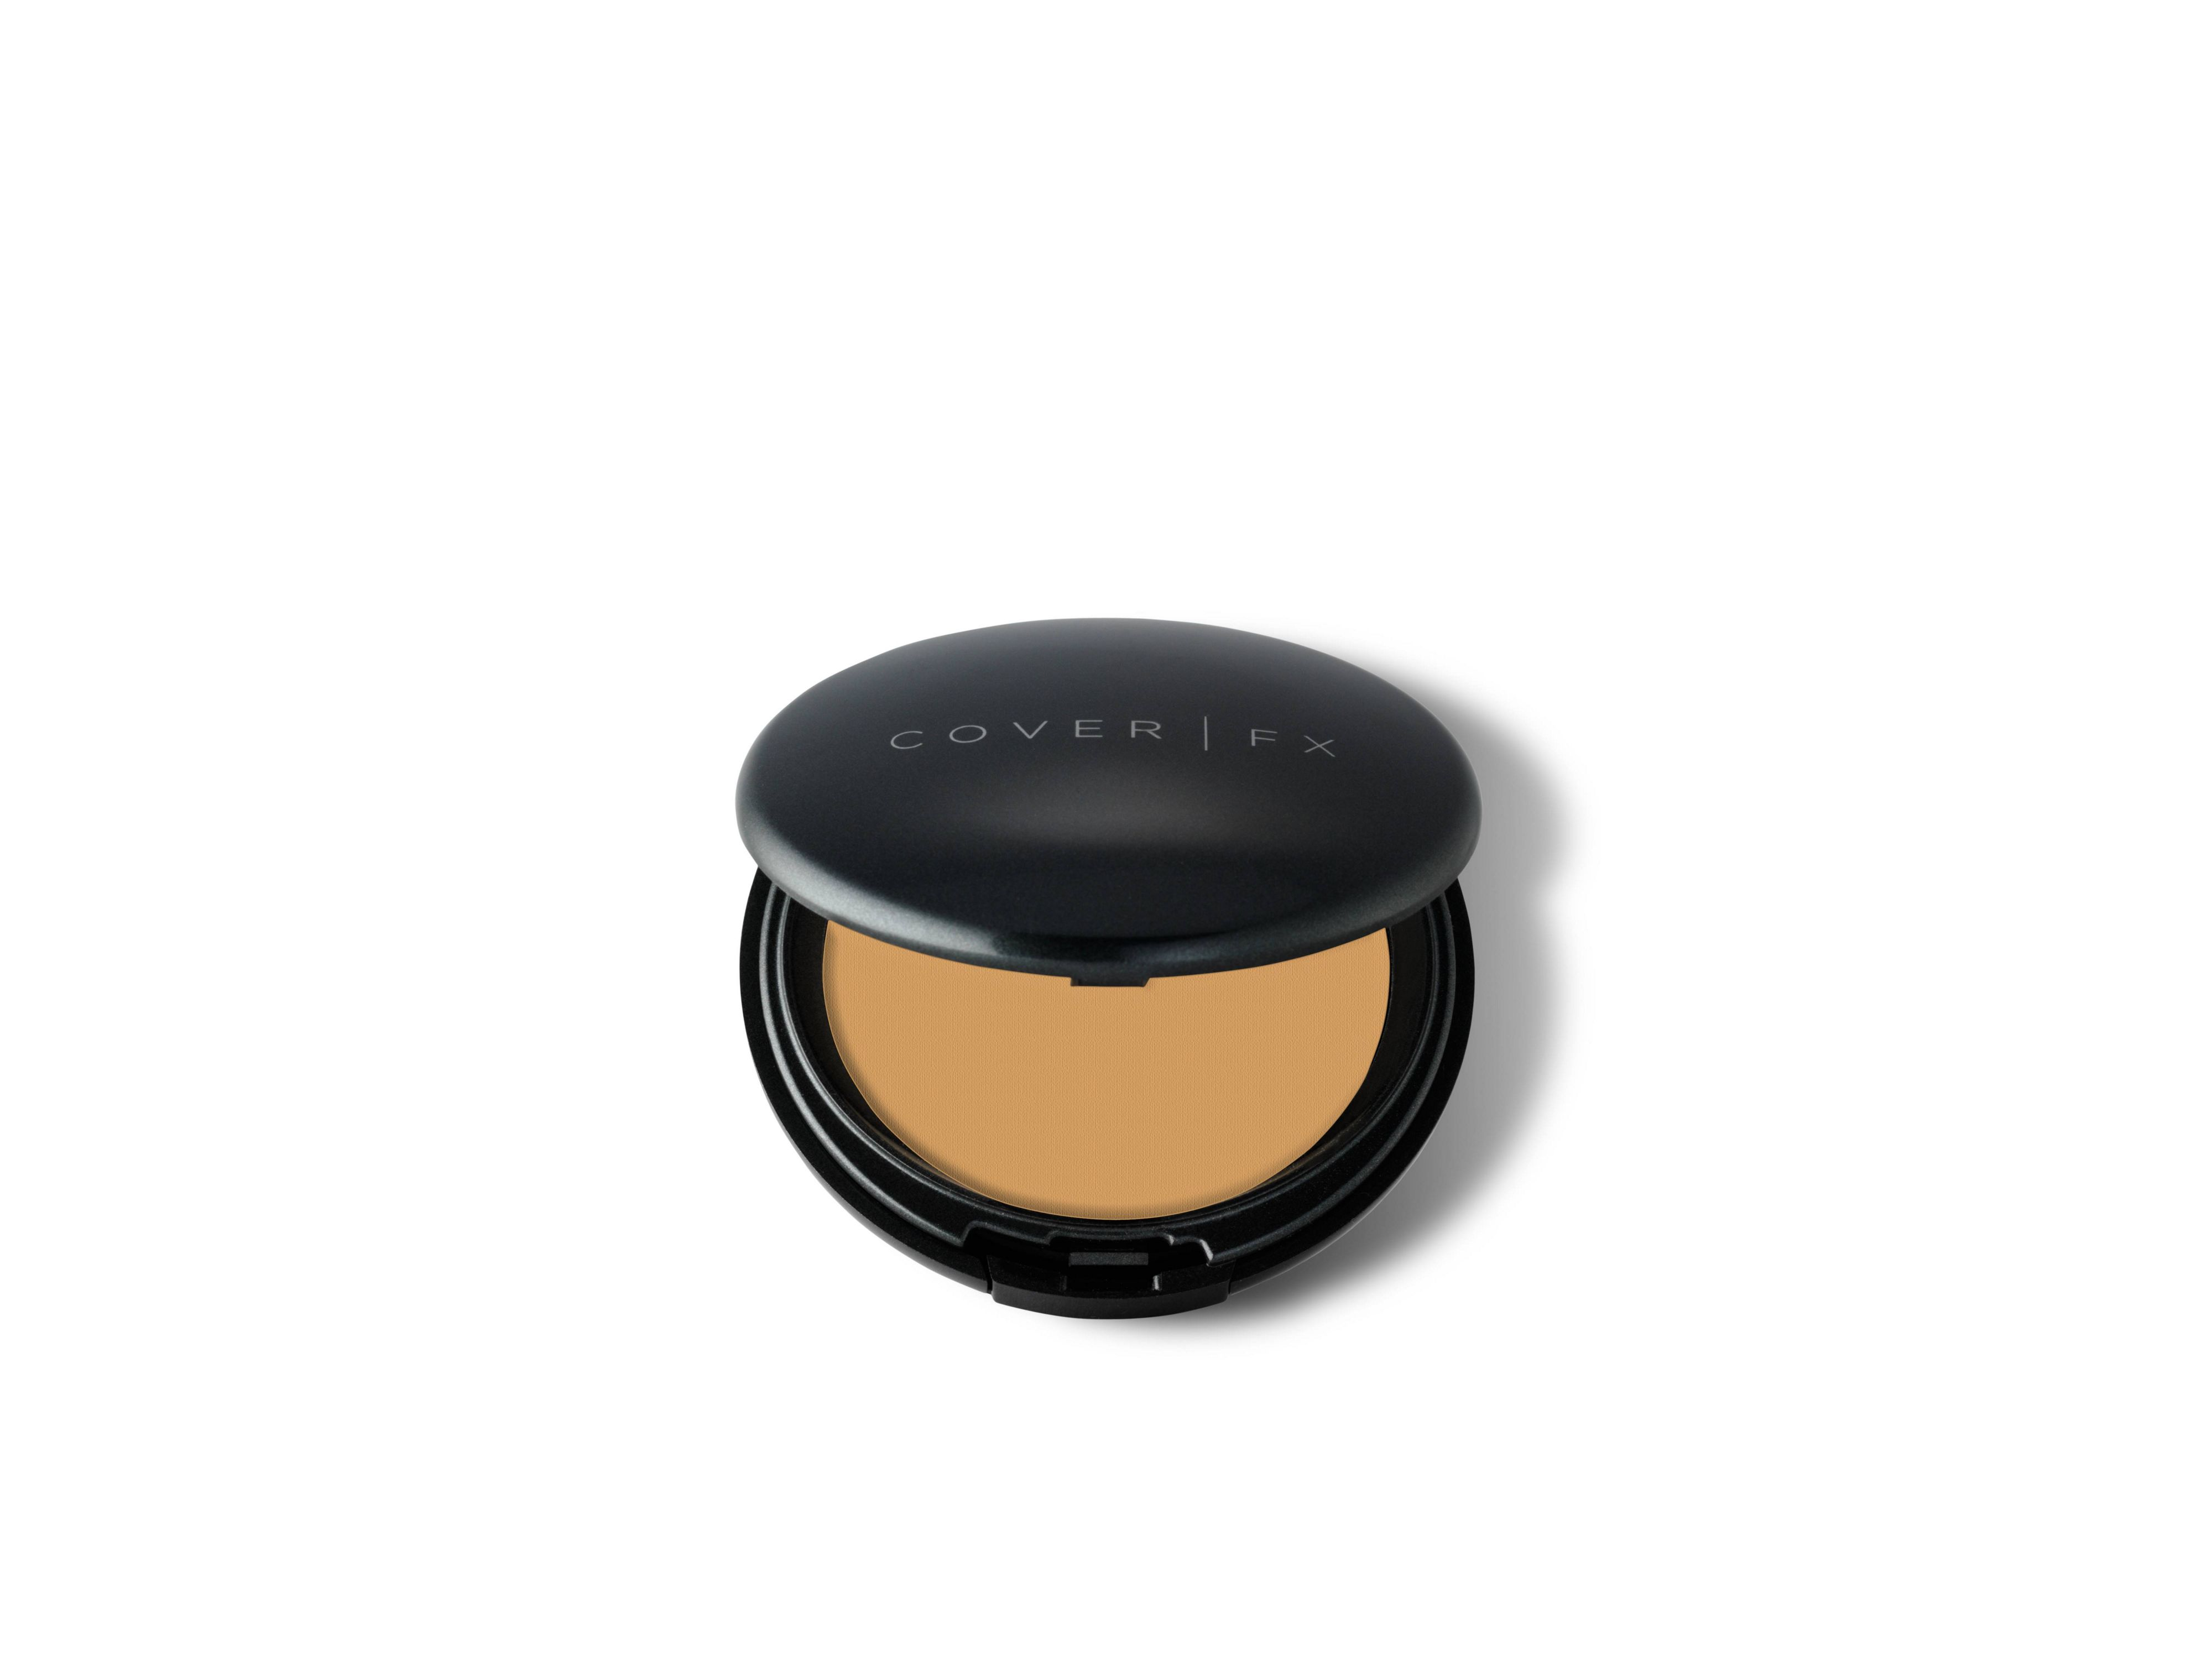 Cover FX Cover FX Pressed Mineral Foundation, G150